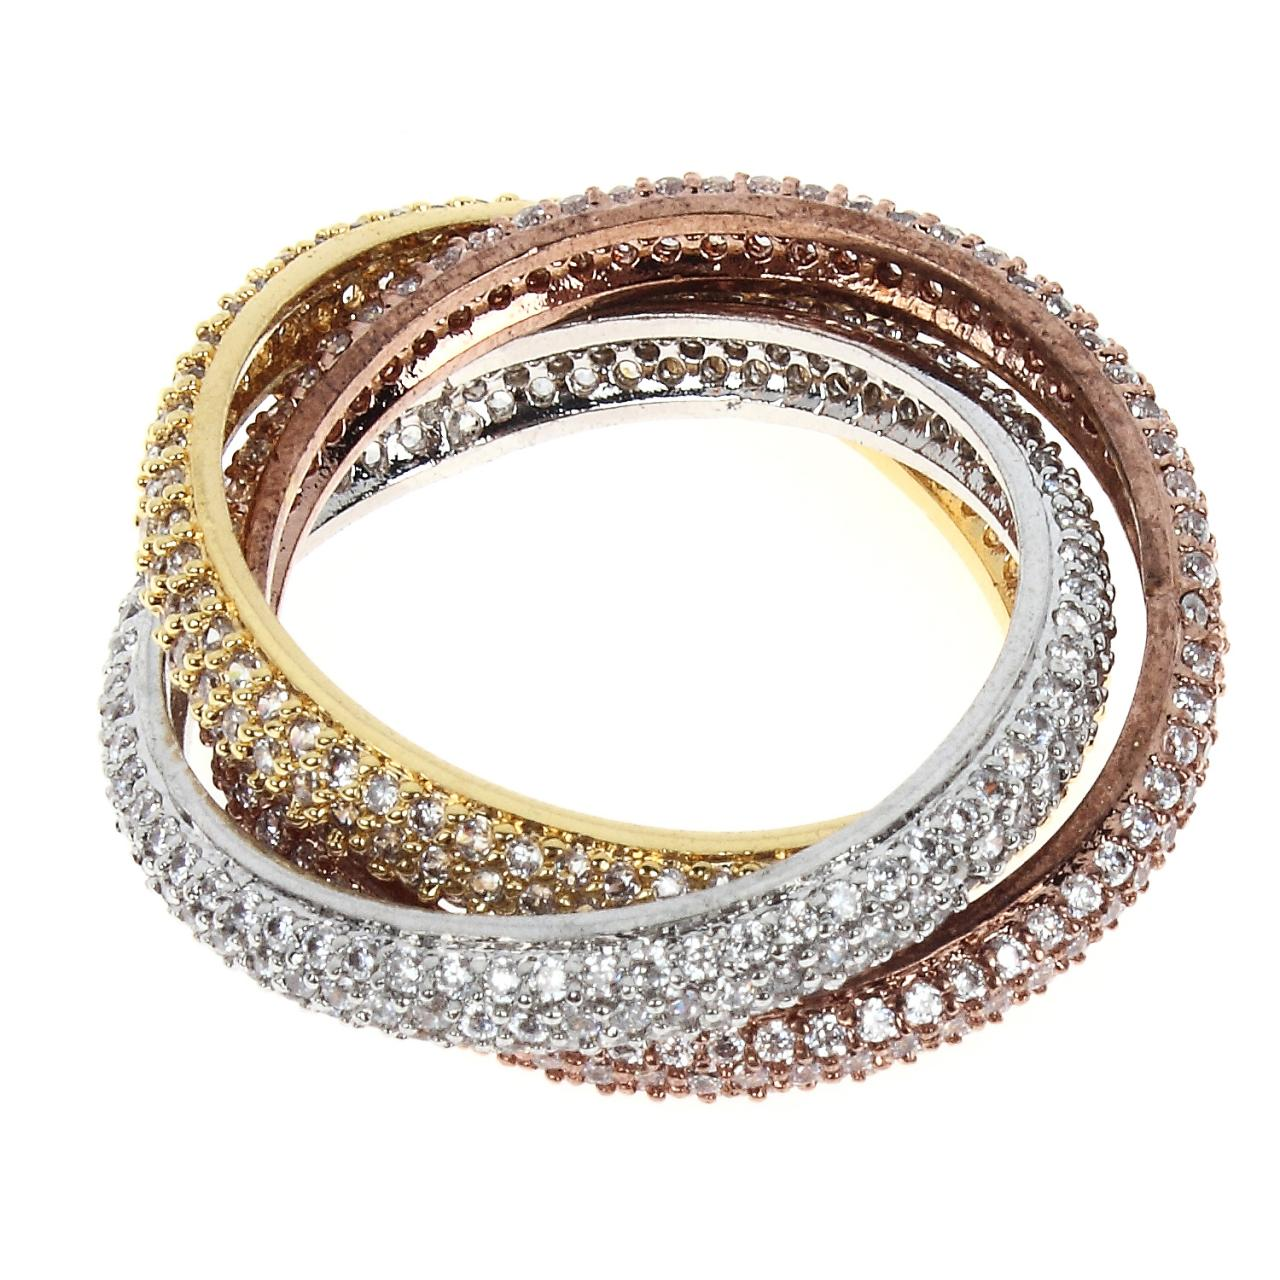 Latest Design Free Shipping 3 Binder Rings For Wedding Party Gift Non-Allergy Plating Prong Setting 3 Color Combinations